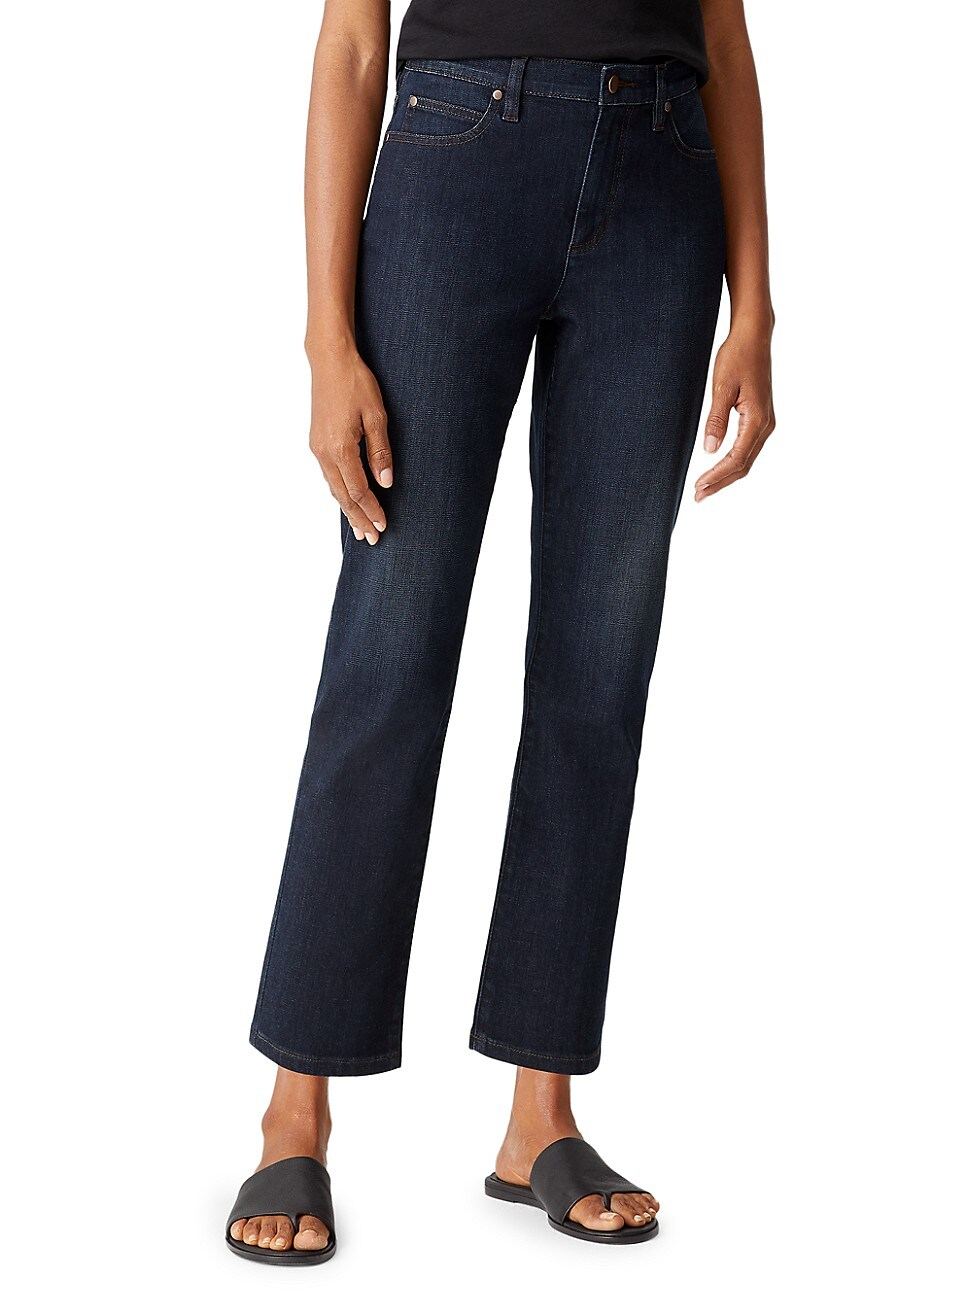 Eileen Fisher WOMEN'S HIGH-RISE STRAIGHT ANKLE JEANS